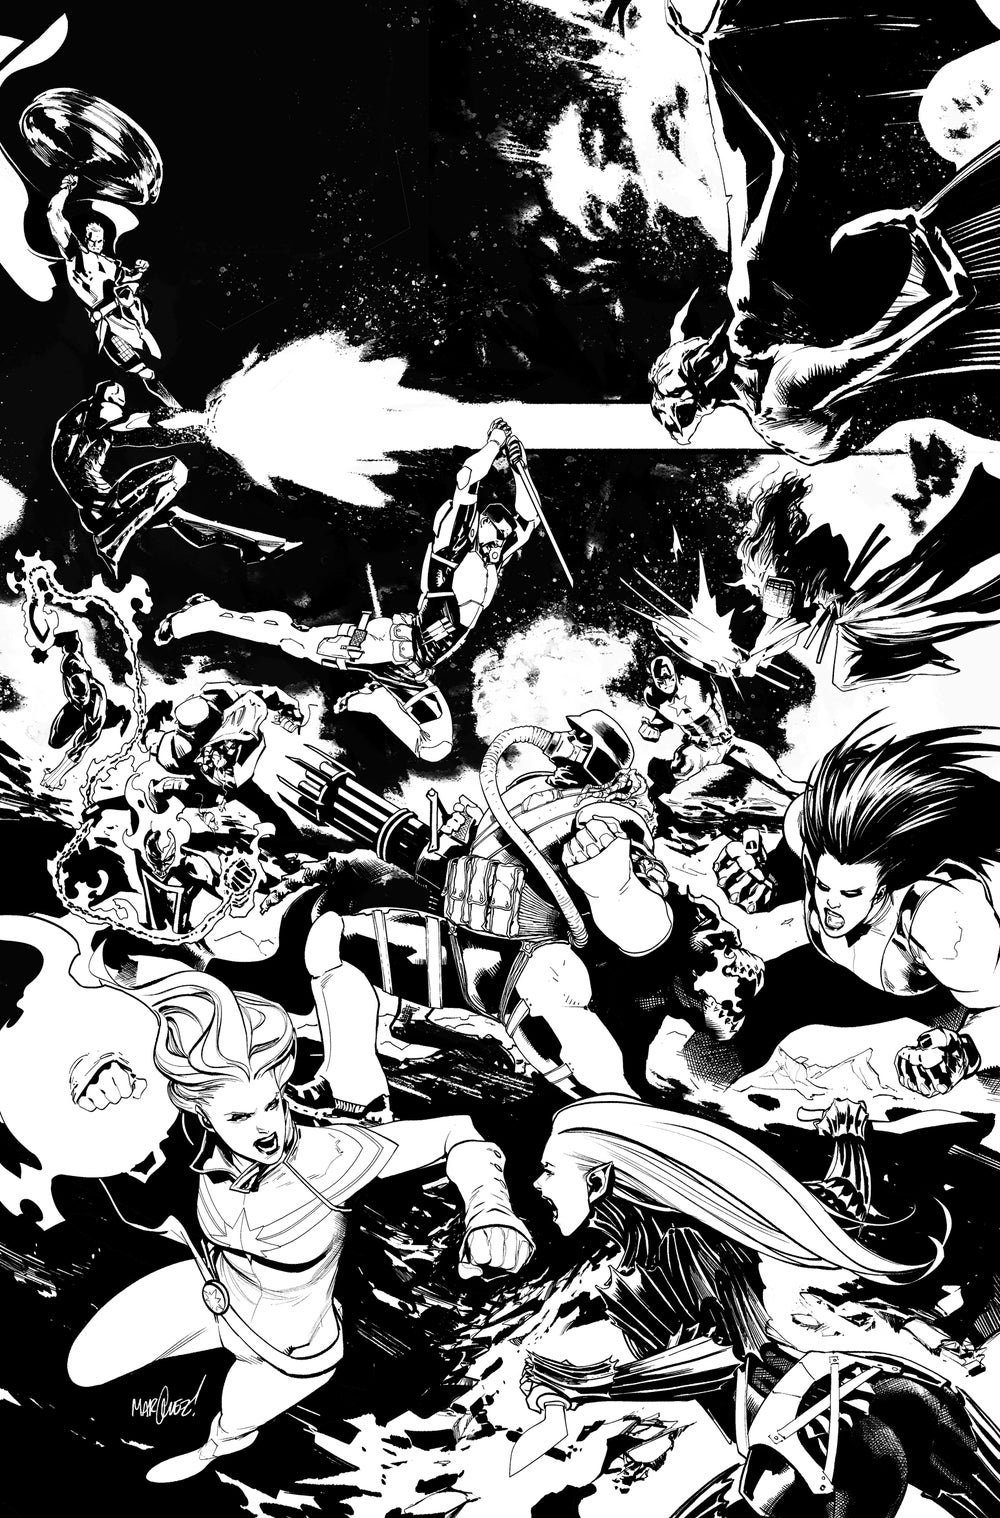 Image of AVENGERS #17 COVER ARTIST'S PROOF